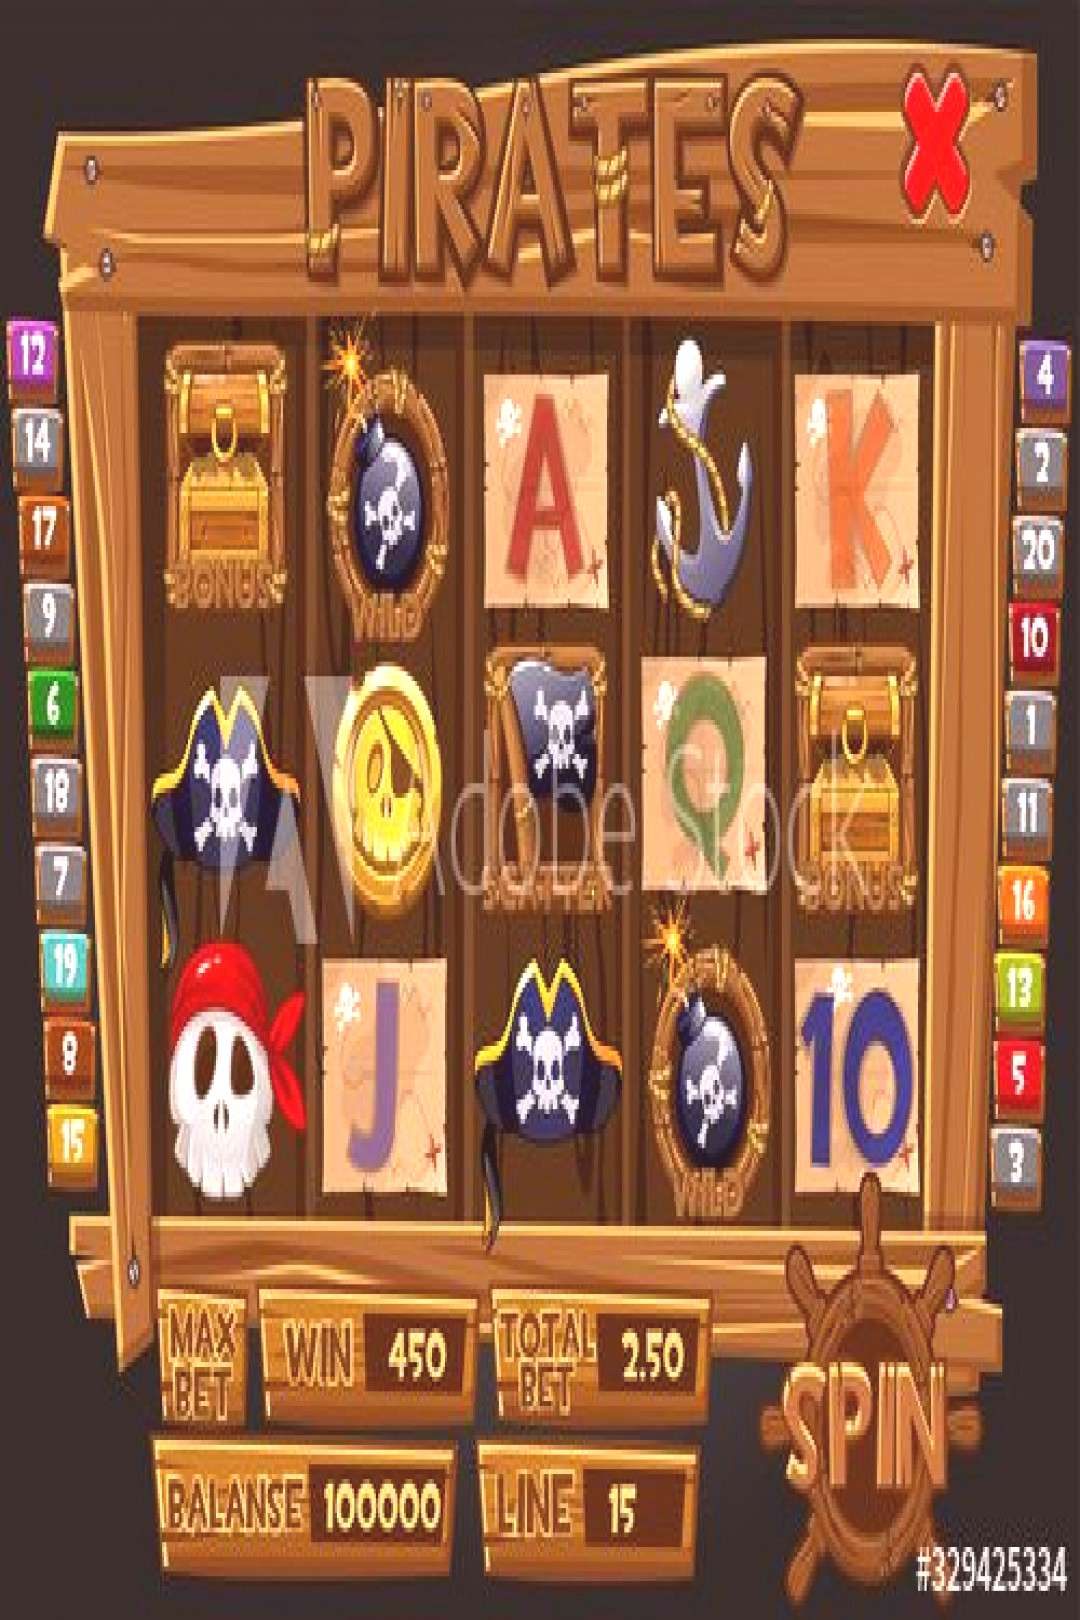 Pirates graphical interface and icons for slot machines. ,